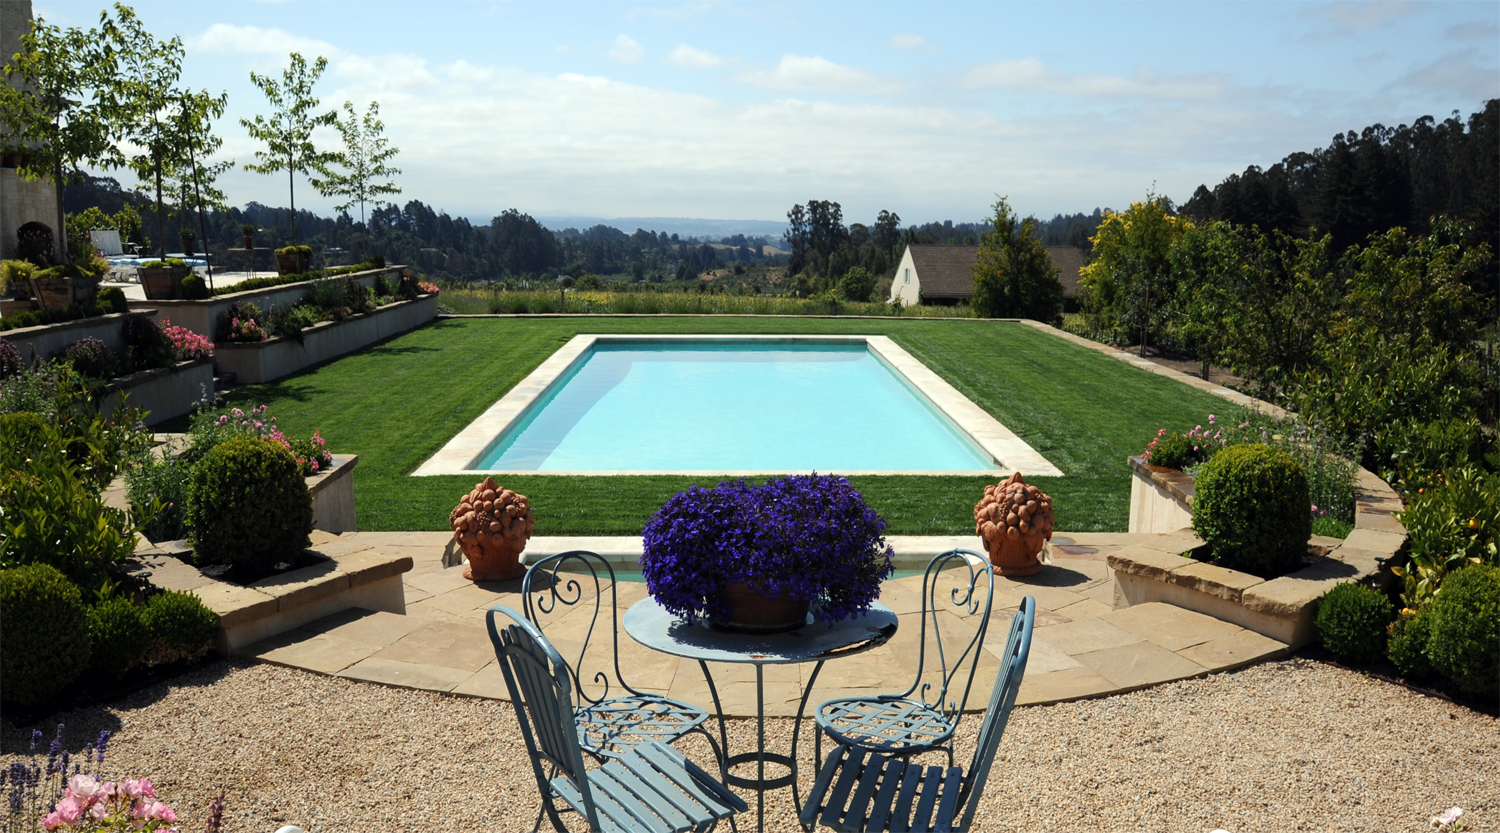 Pool and Spa overlooking the vineyard and barn below.